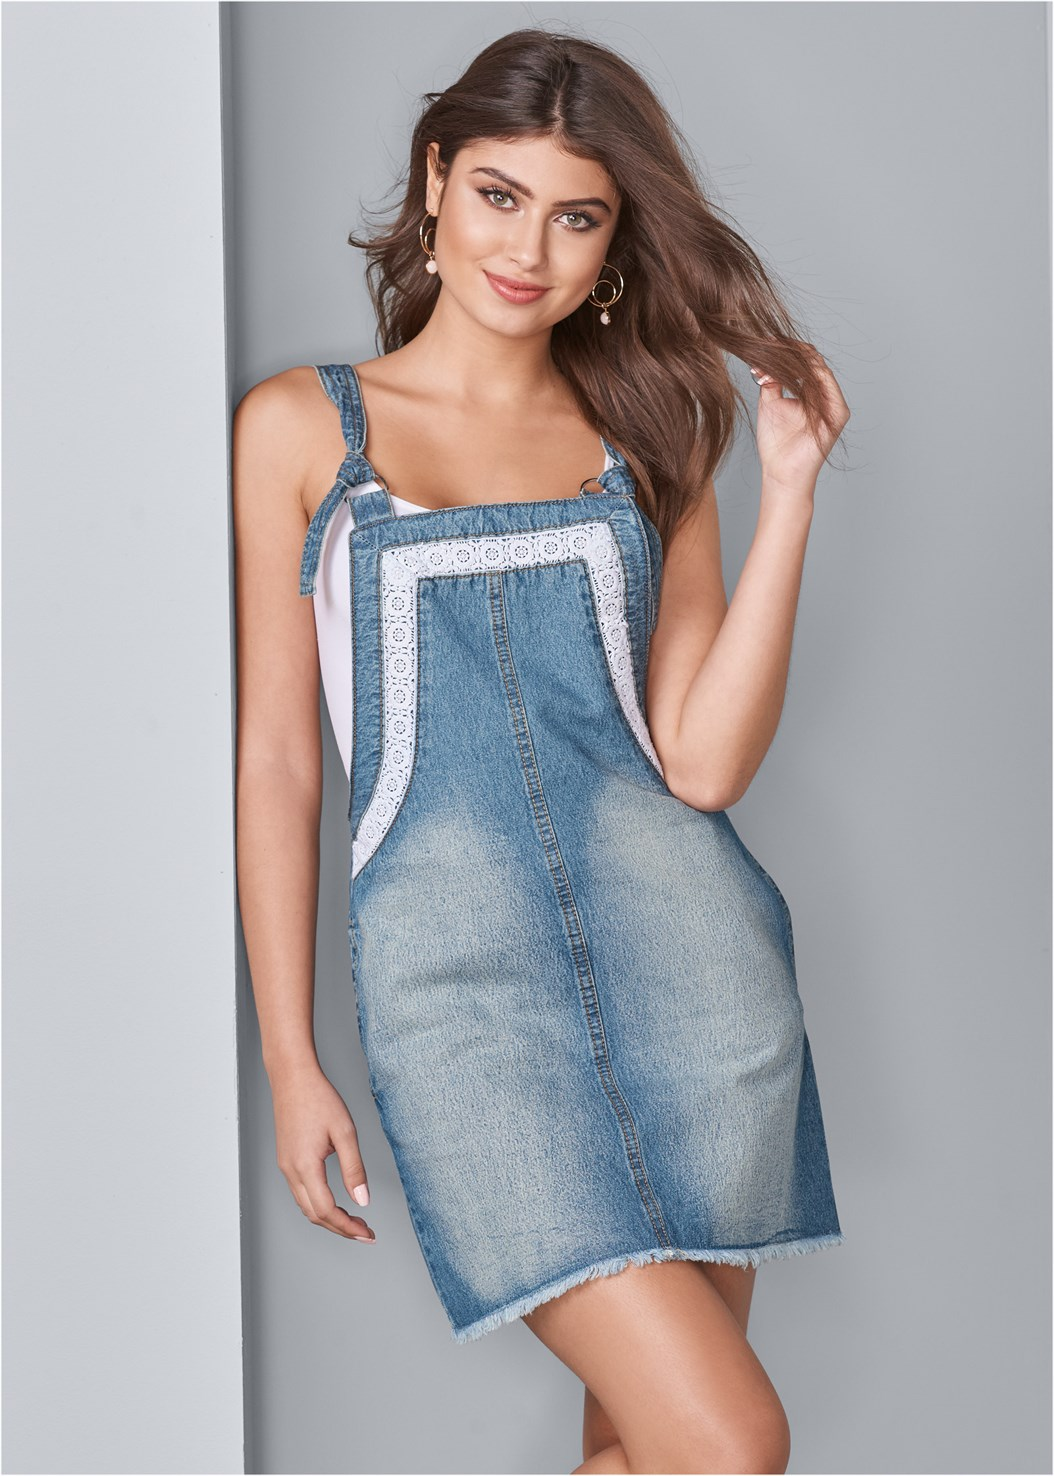 Lace Trim Denim Dress,Basic Cami Two Pack